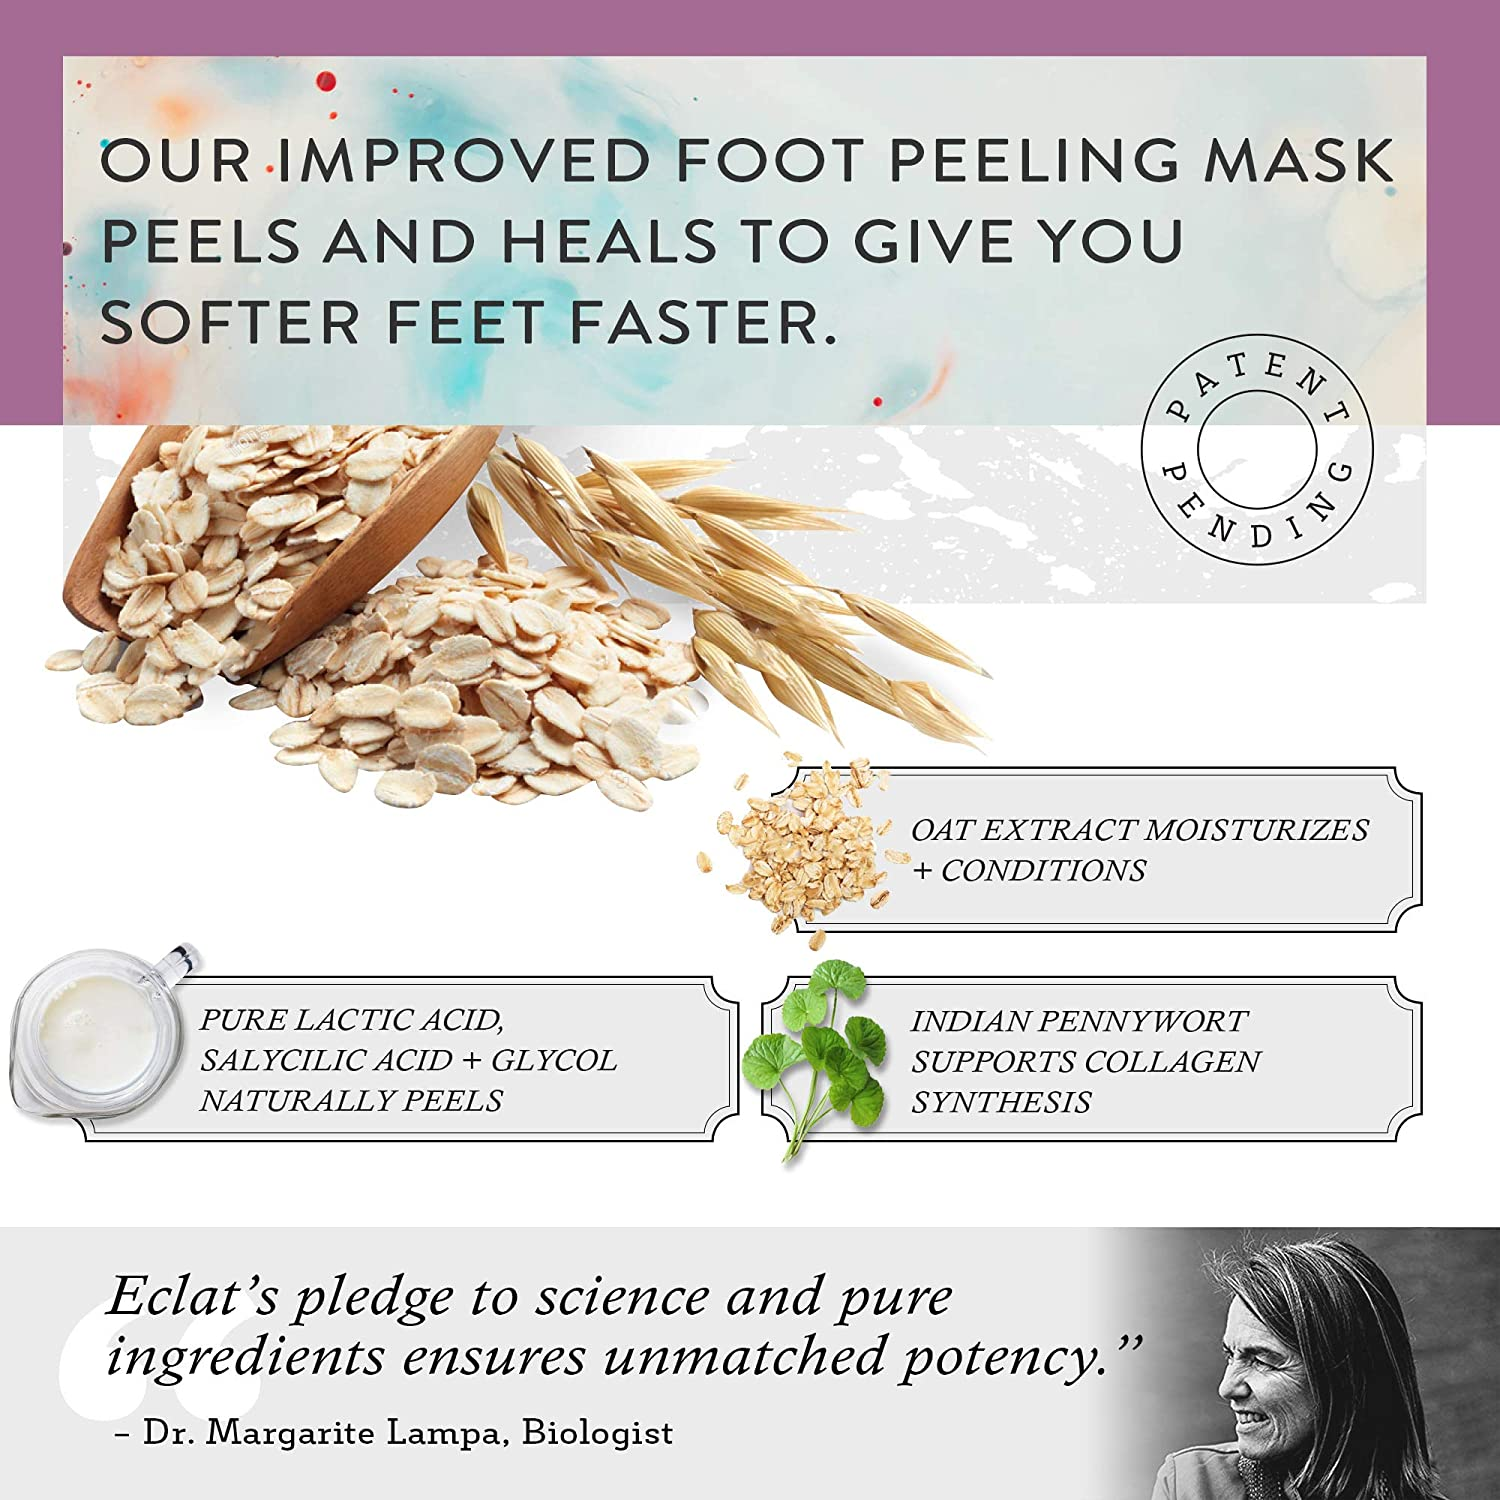 2 Pair Foot Peeling Mask Socks Booties with Natural Oat Extract and Indian Pennywort for Baby Soft Feet Fast in an Easy Use Foot Peel Mask Foot Peeling Mask by Eclat